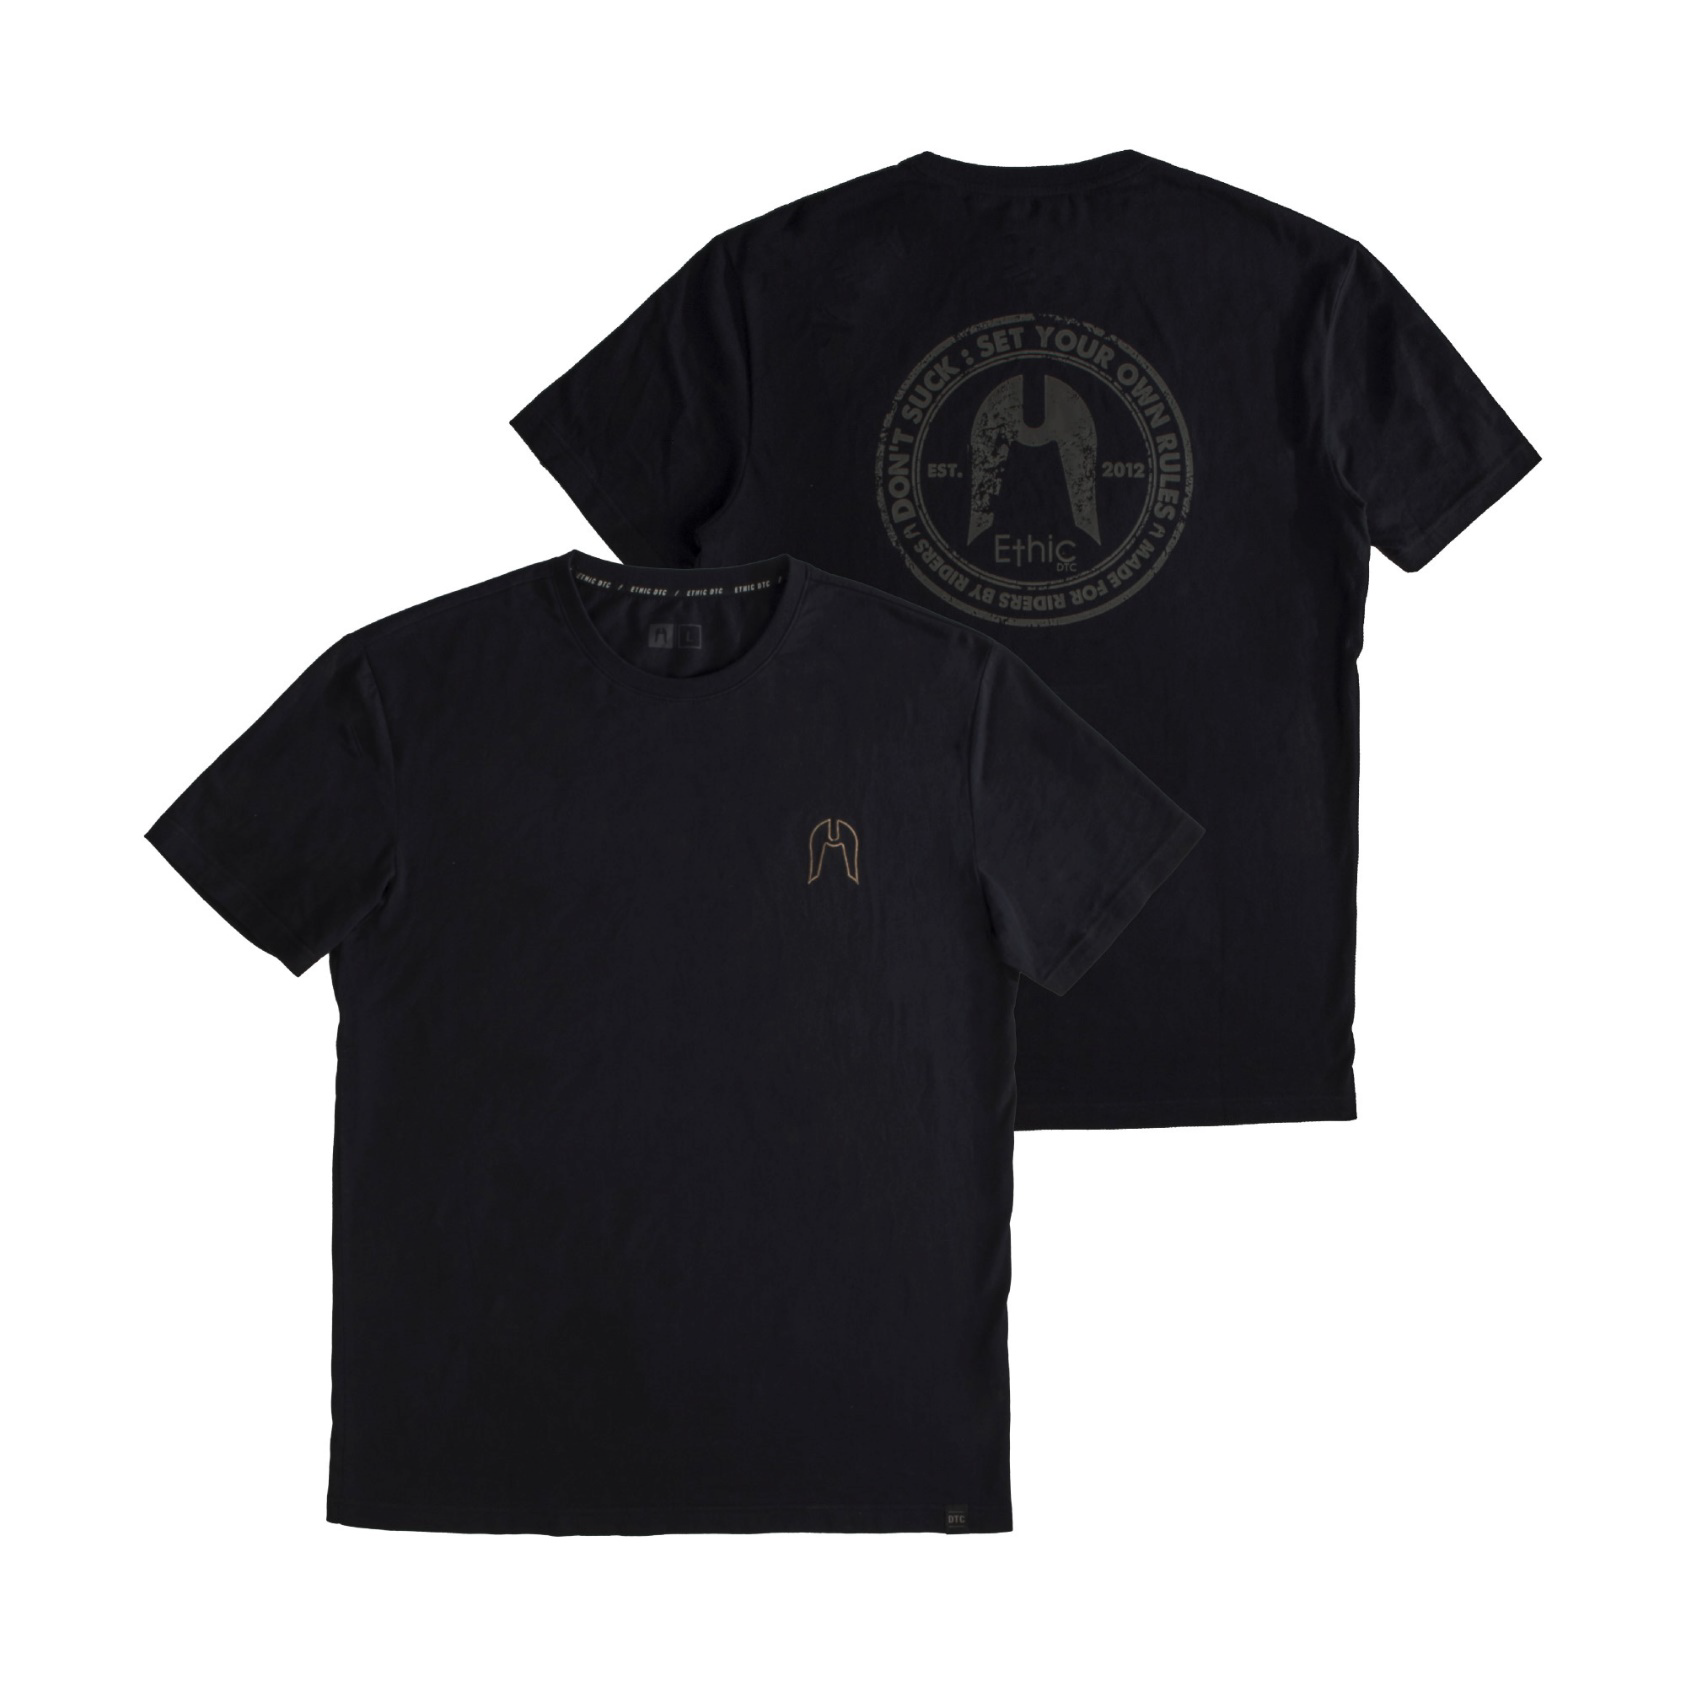 Ethic Casual Suspect T-shirt